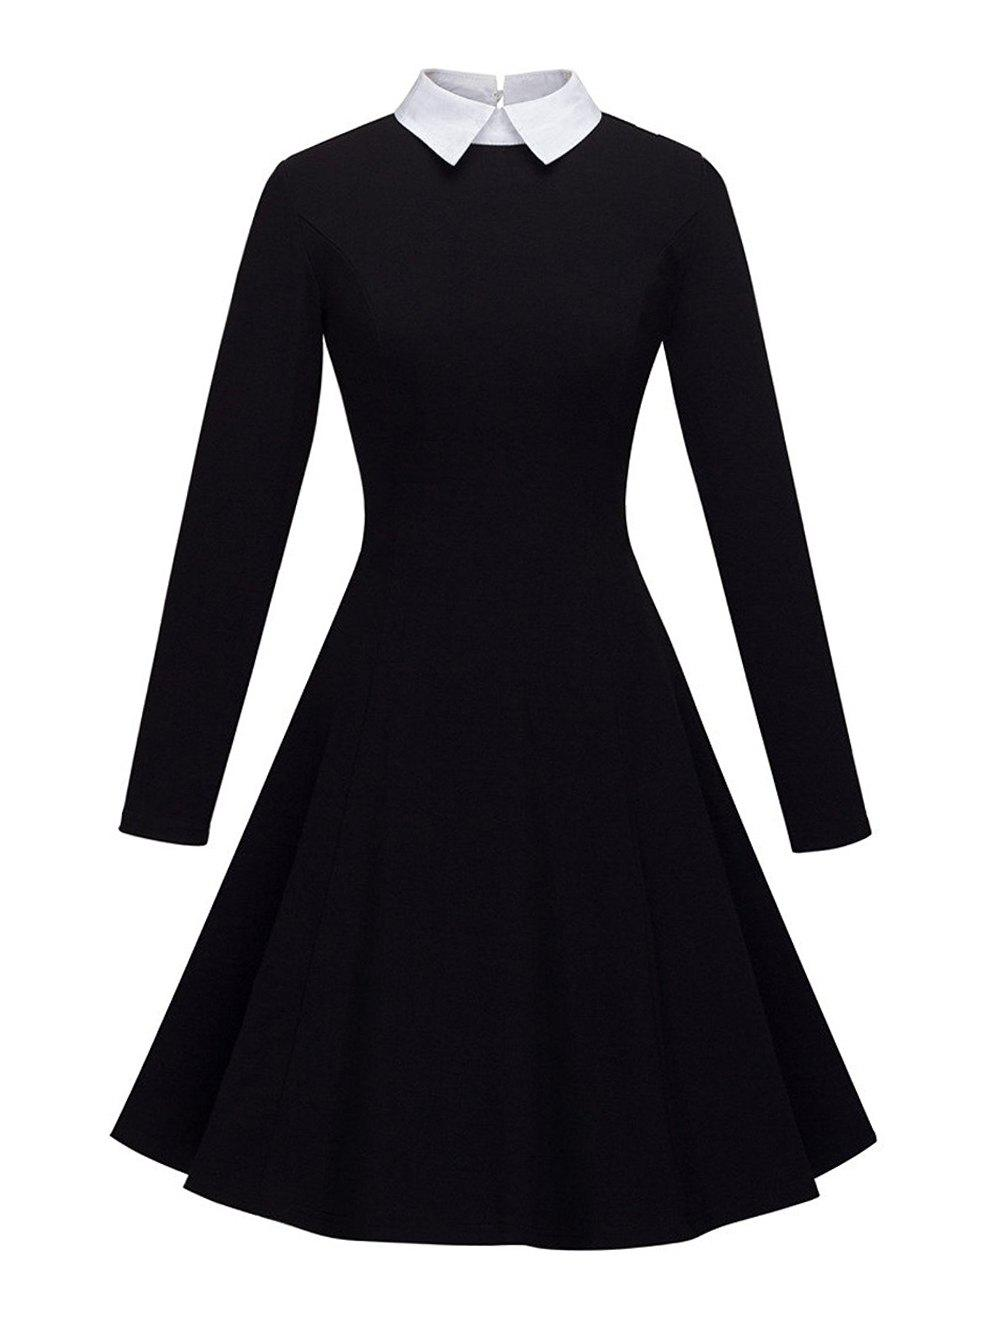 10b3a9aff84b 2019 Women s Peter Pan Lapel Collar Long Sleeve Fit And Flare Dress ...